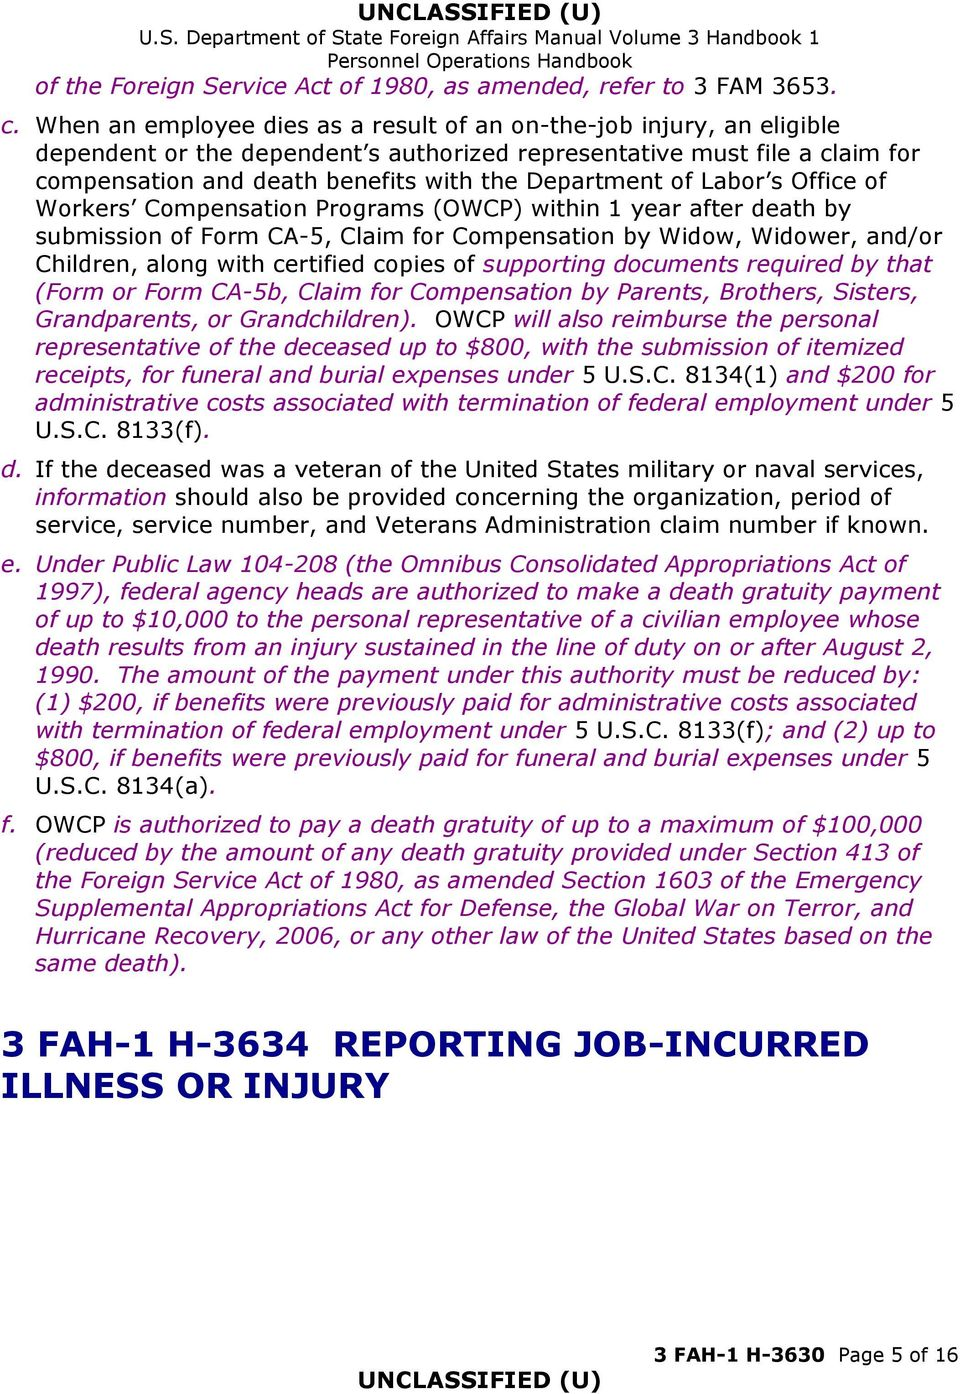 of Labor s Office of Workers Compensation Programs (OWCP) within 1 year after death by submission of Form CA-5, Claim for Compensation by Widow, Widower, and/or Children, along with certified copies